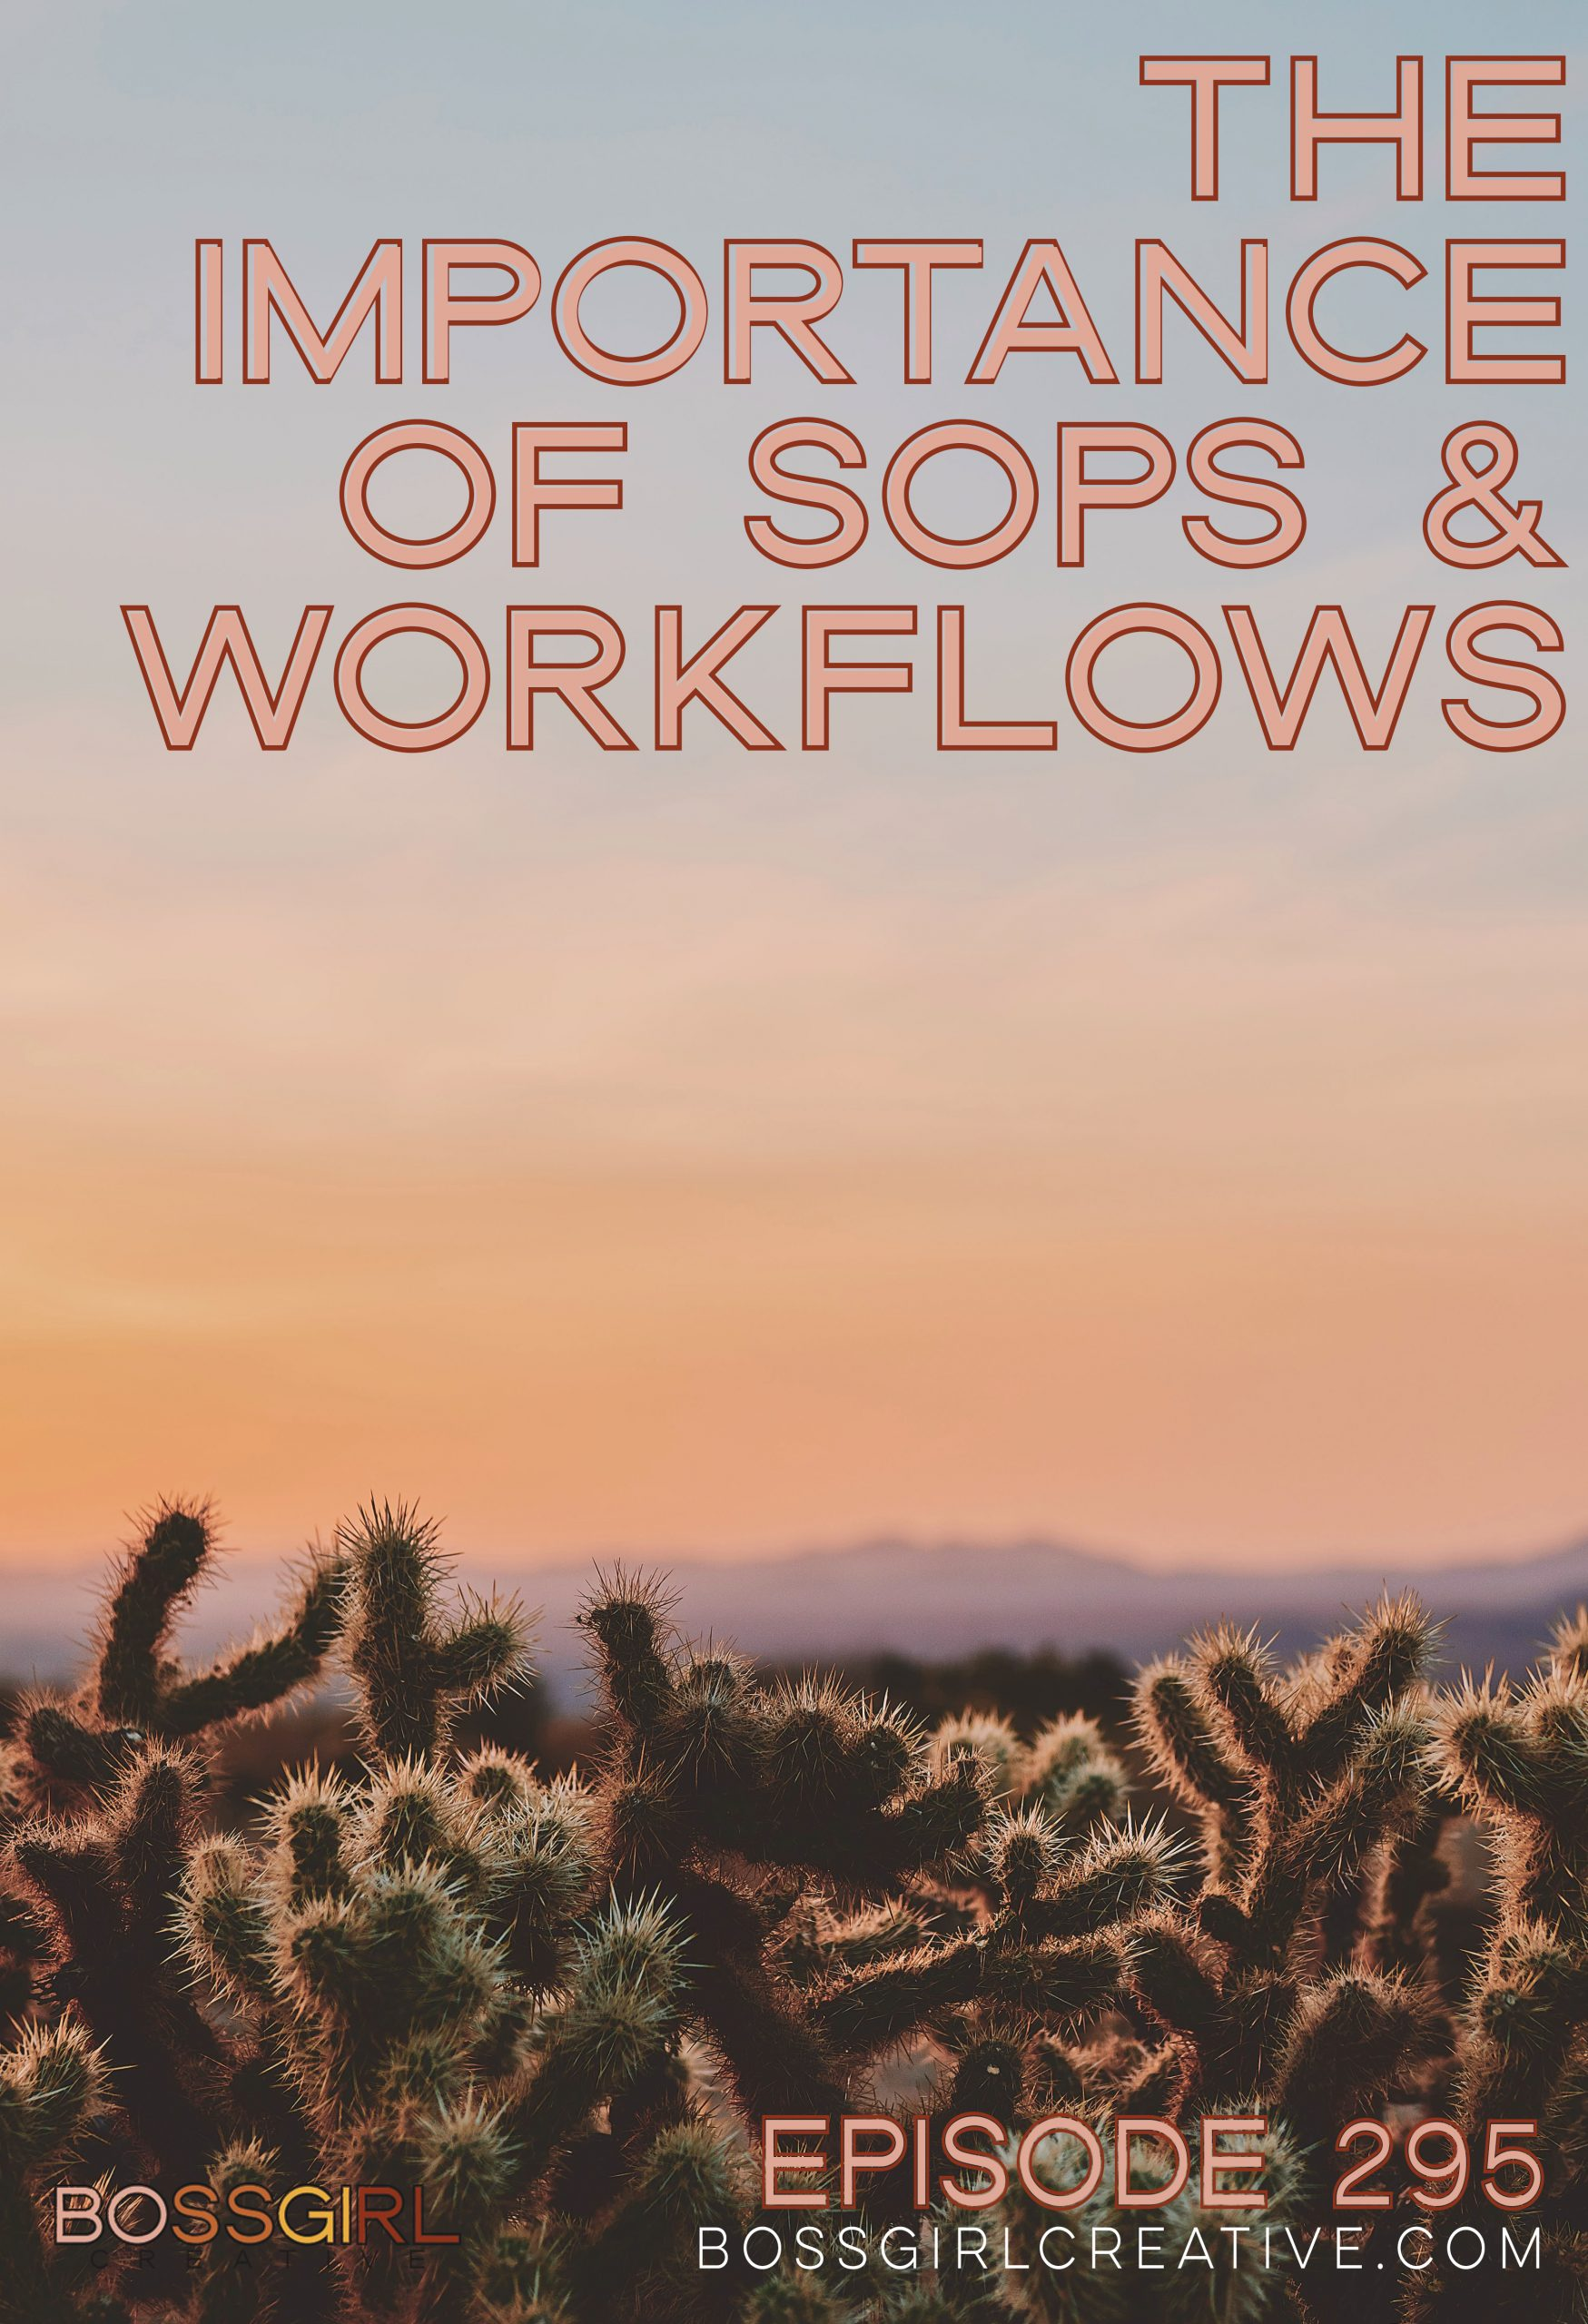 BGC Episode 295 - The Importance of SOPs and Workflows